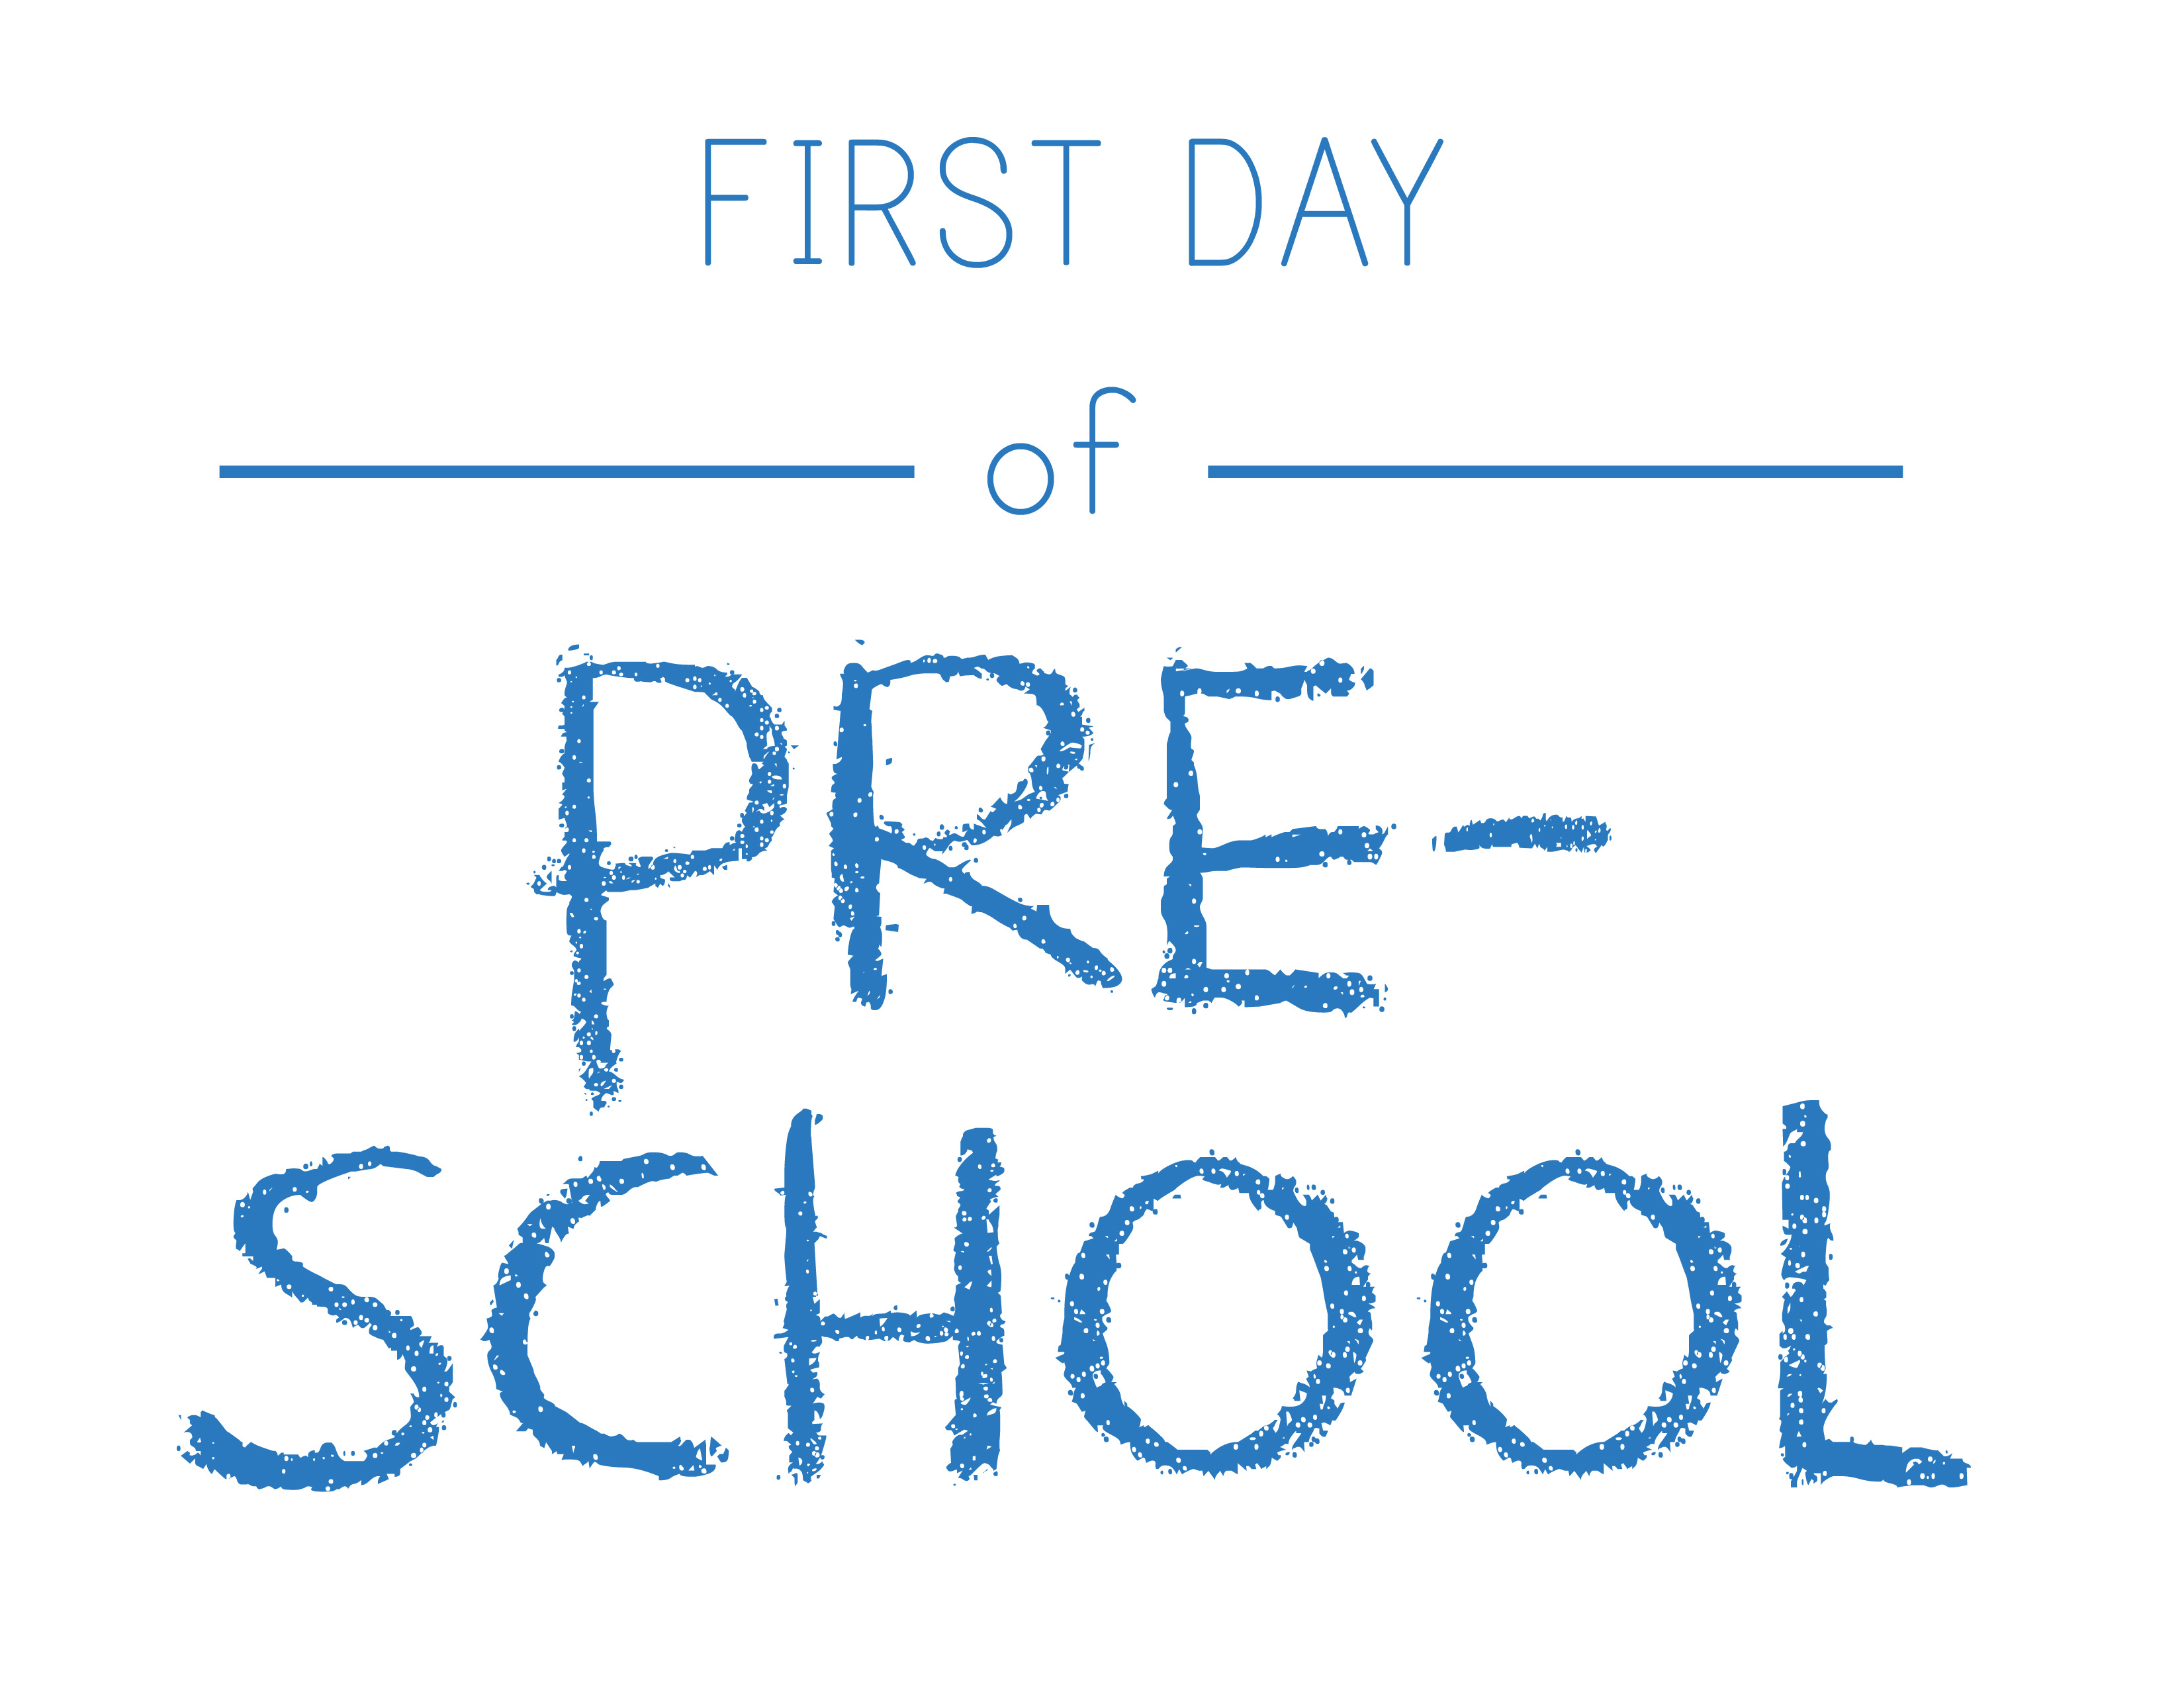 Printable First Day Of School Signs And Bonus Photo Ideas